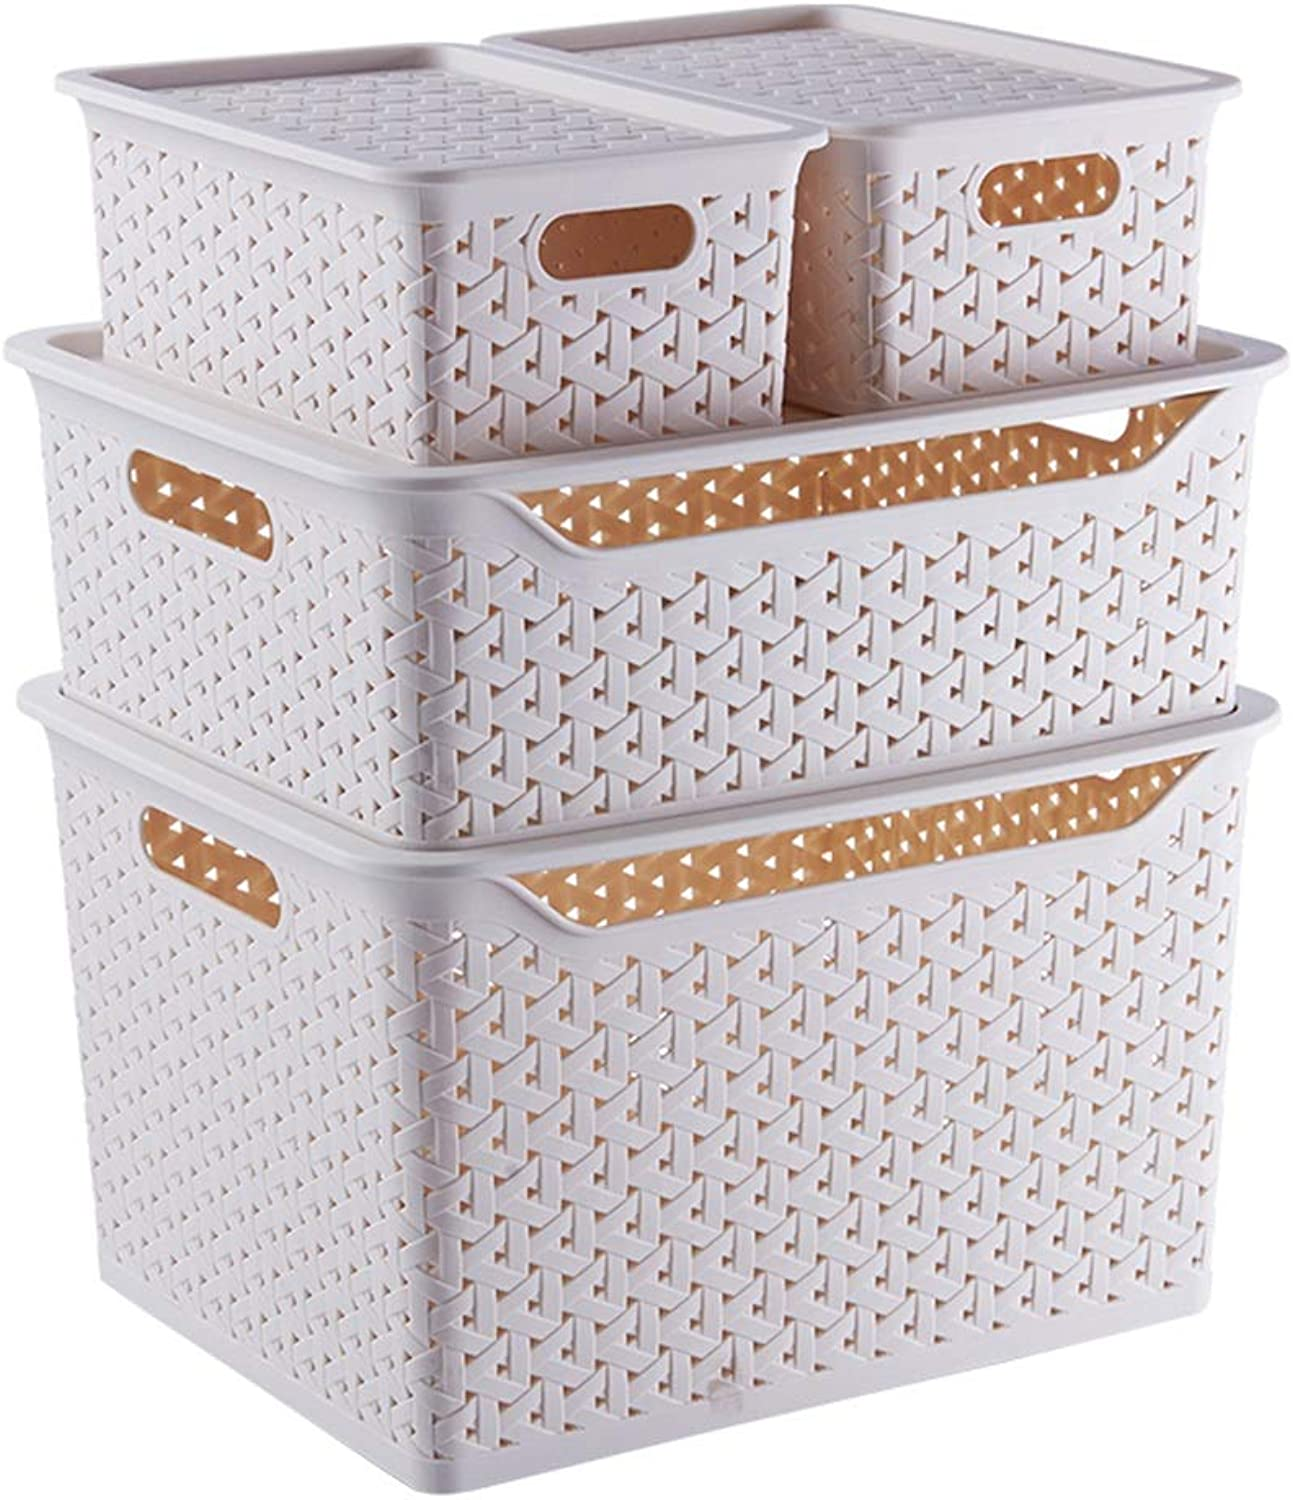 ZHANGQIANG Storage Basket Laundry Basket Small Medium Large Big Plastic Storage Clear Box with Lid Strong Stackable Container Made in U.K. - Set of 4 (color   White, Size   Four-Piece Set)